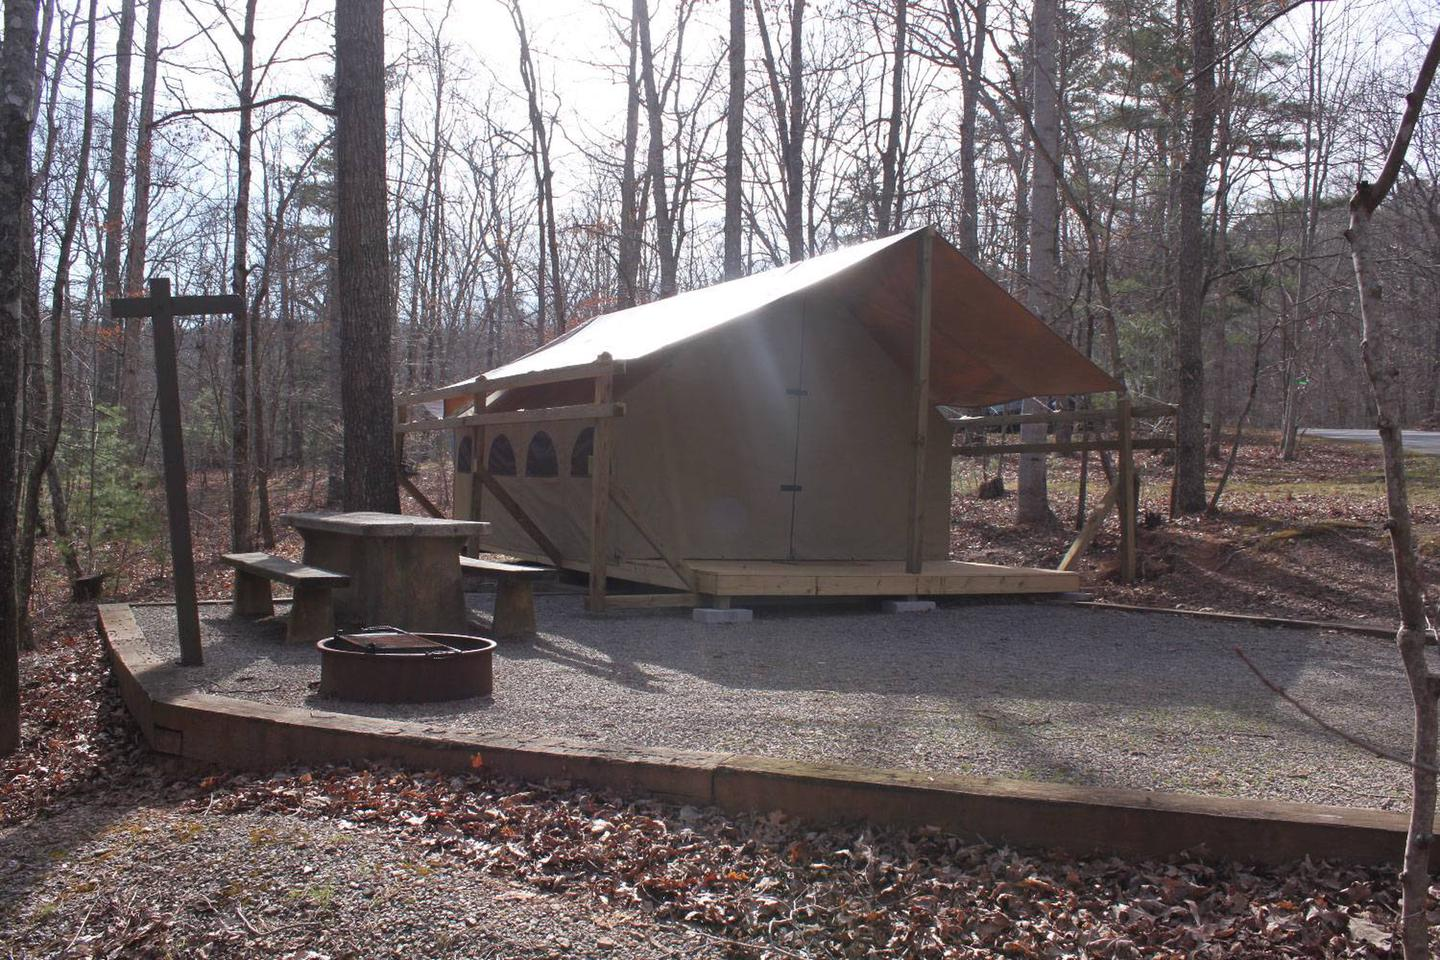 Lake Powhatan Glamping SitesGlamping Sites - new for 2019!